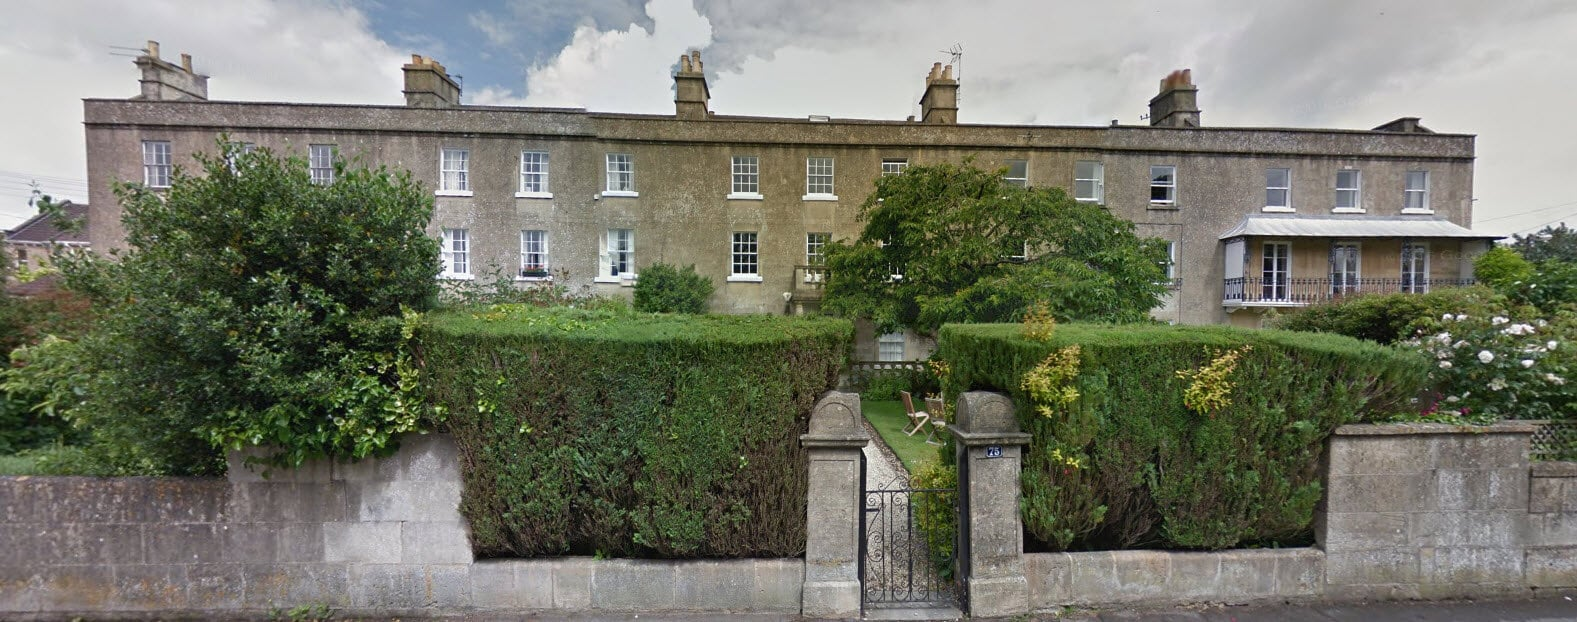 Isabella Place, Combe Down